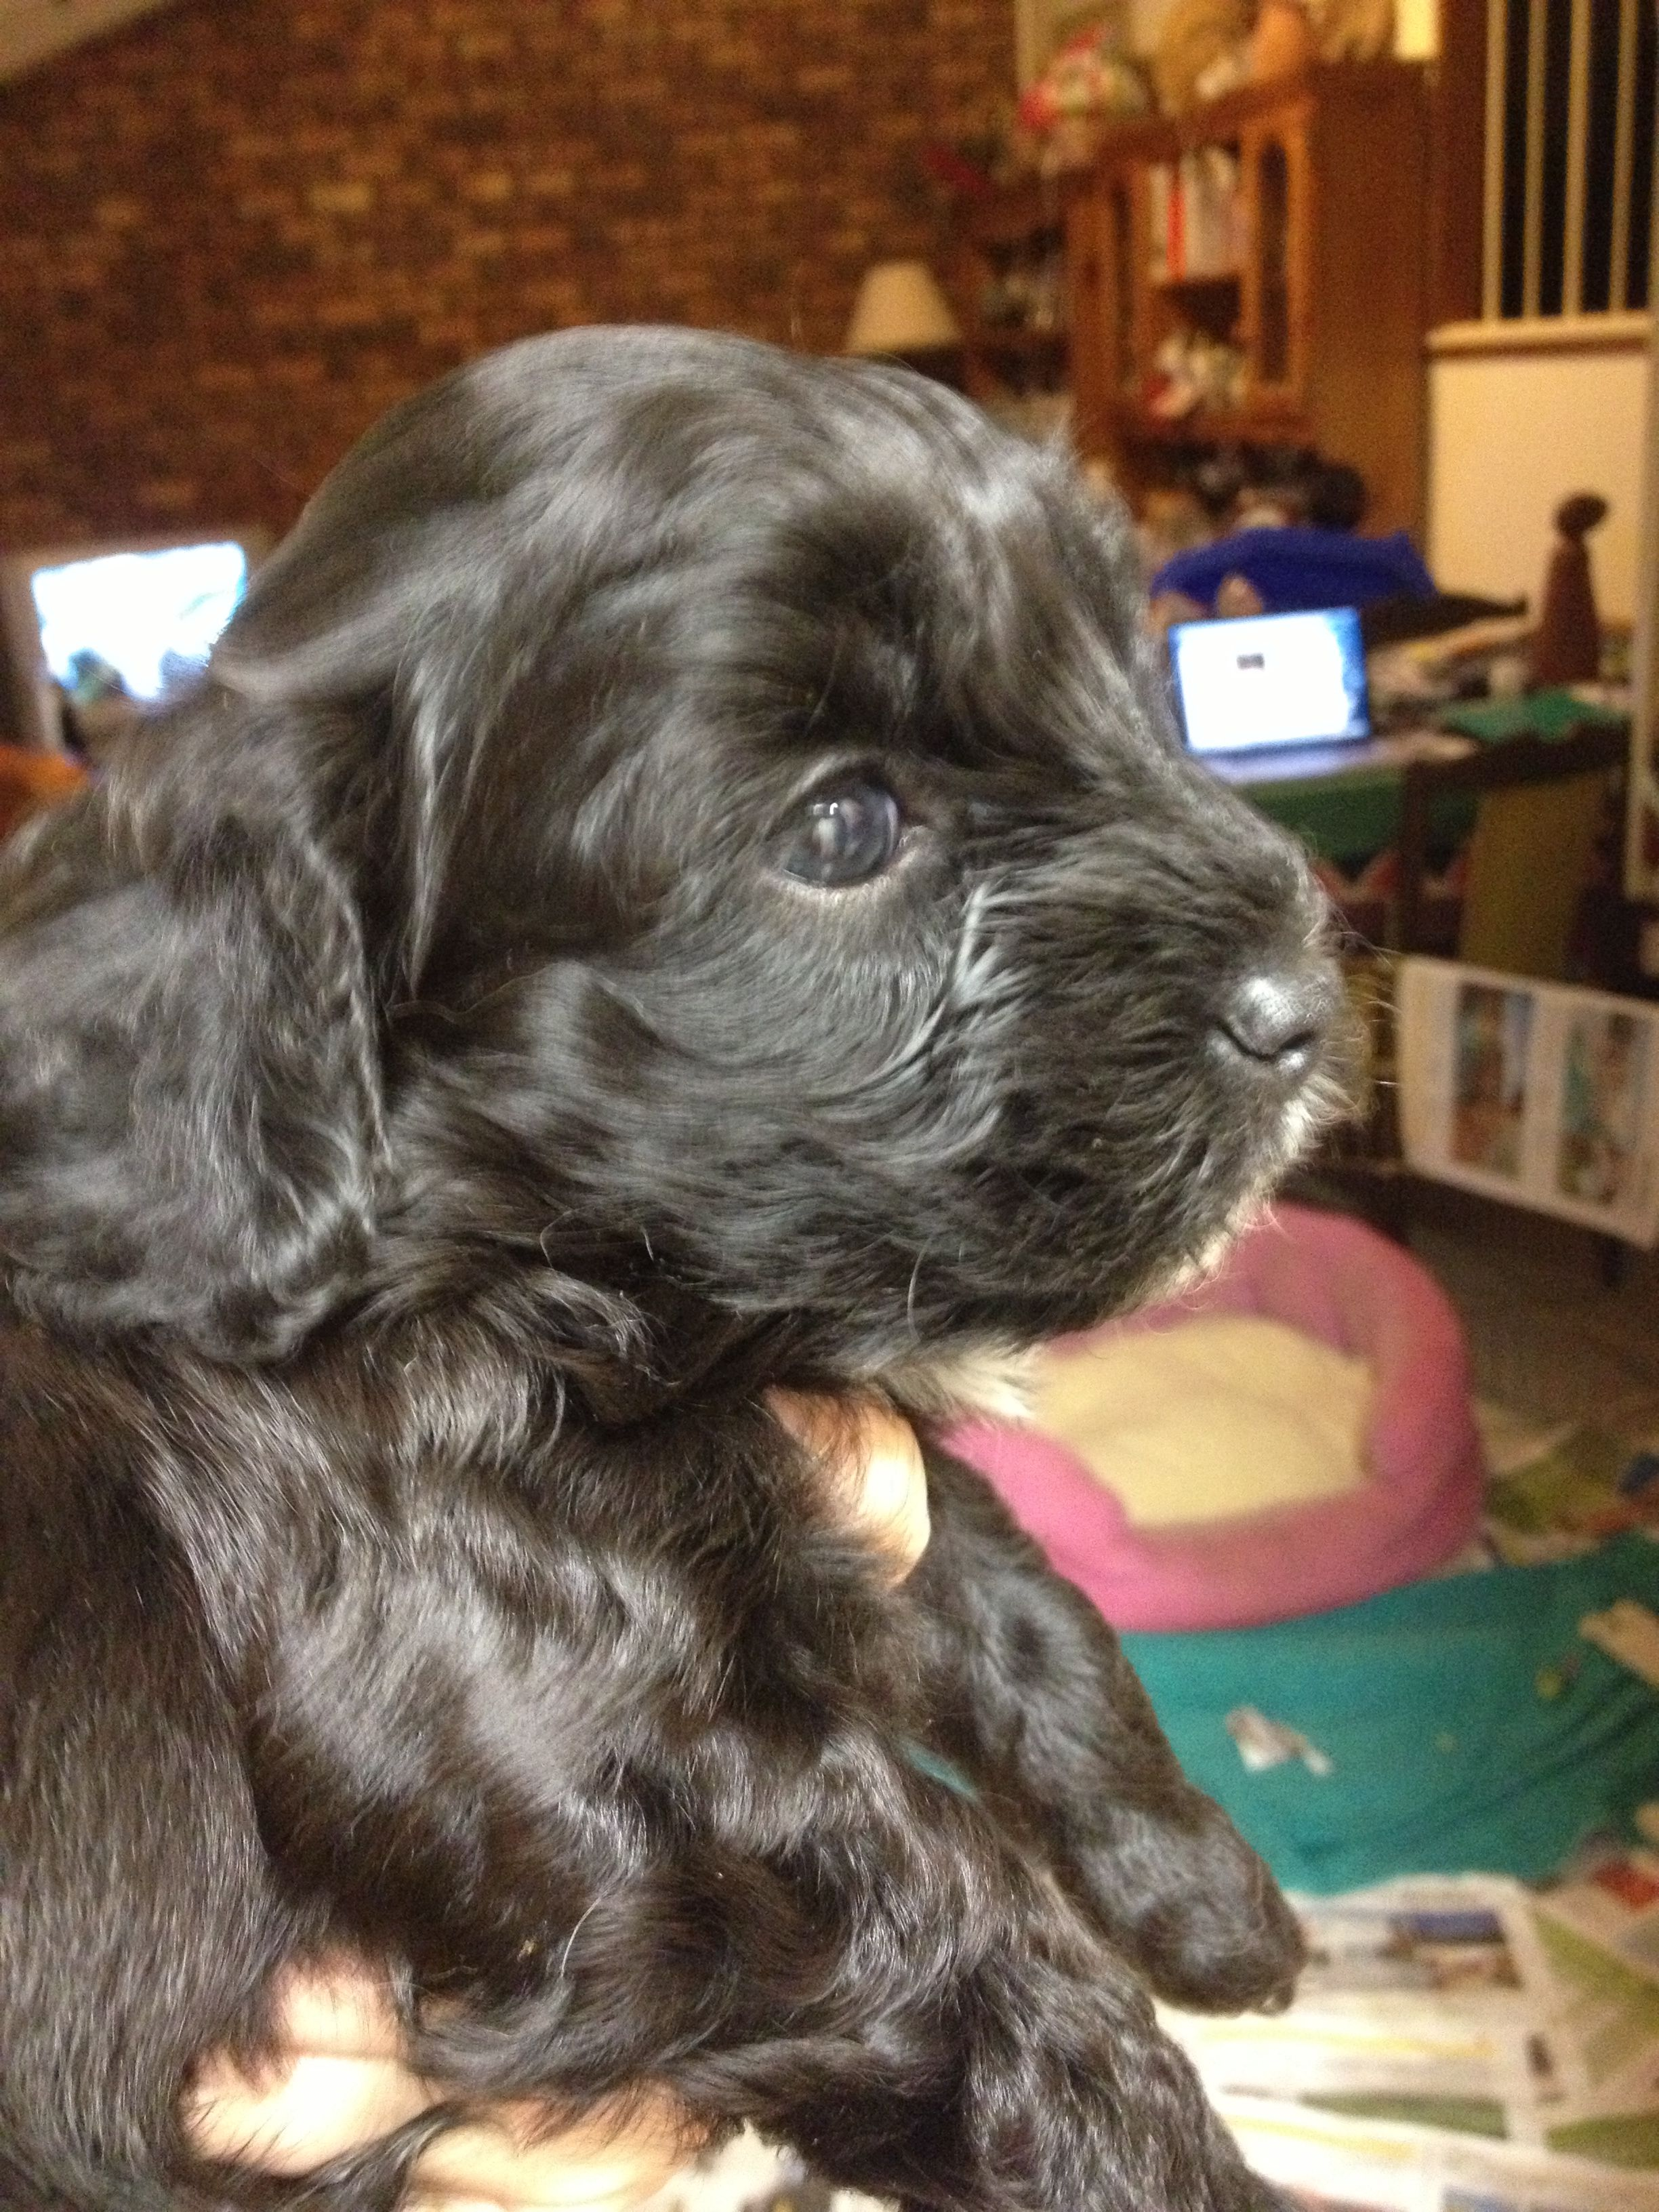 Cavoodle puppy 4 weeks old. Cavapoo puppies, Puppies, Pets